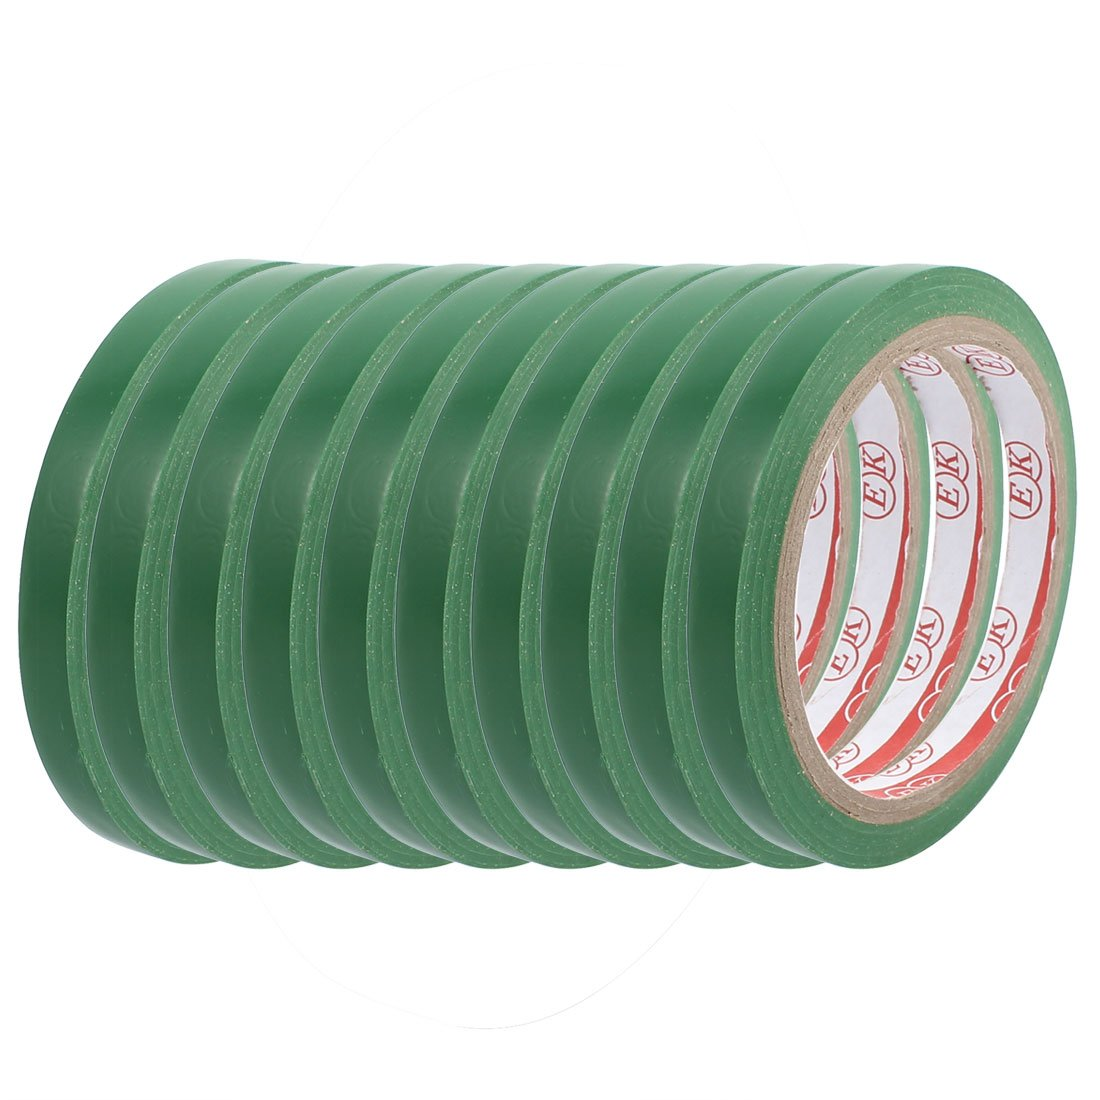 uxcell 10pcs 1cm Width Safety Caution Warning Sticker Adhesive Tape 17M Length Green